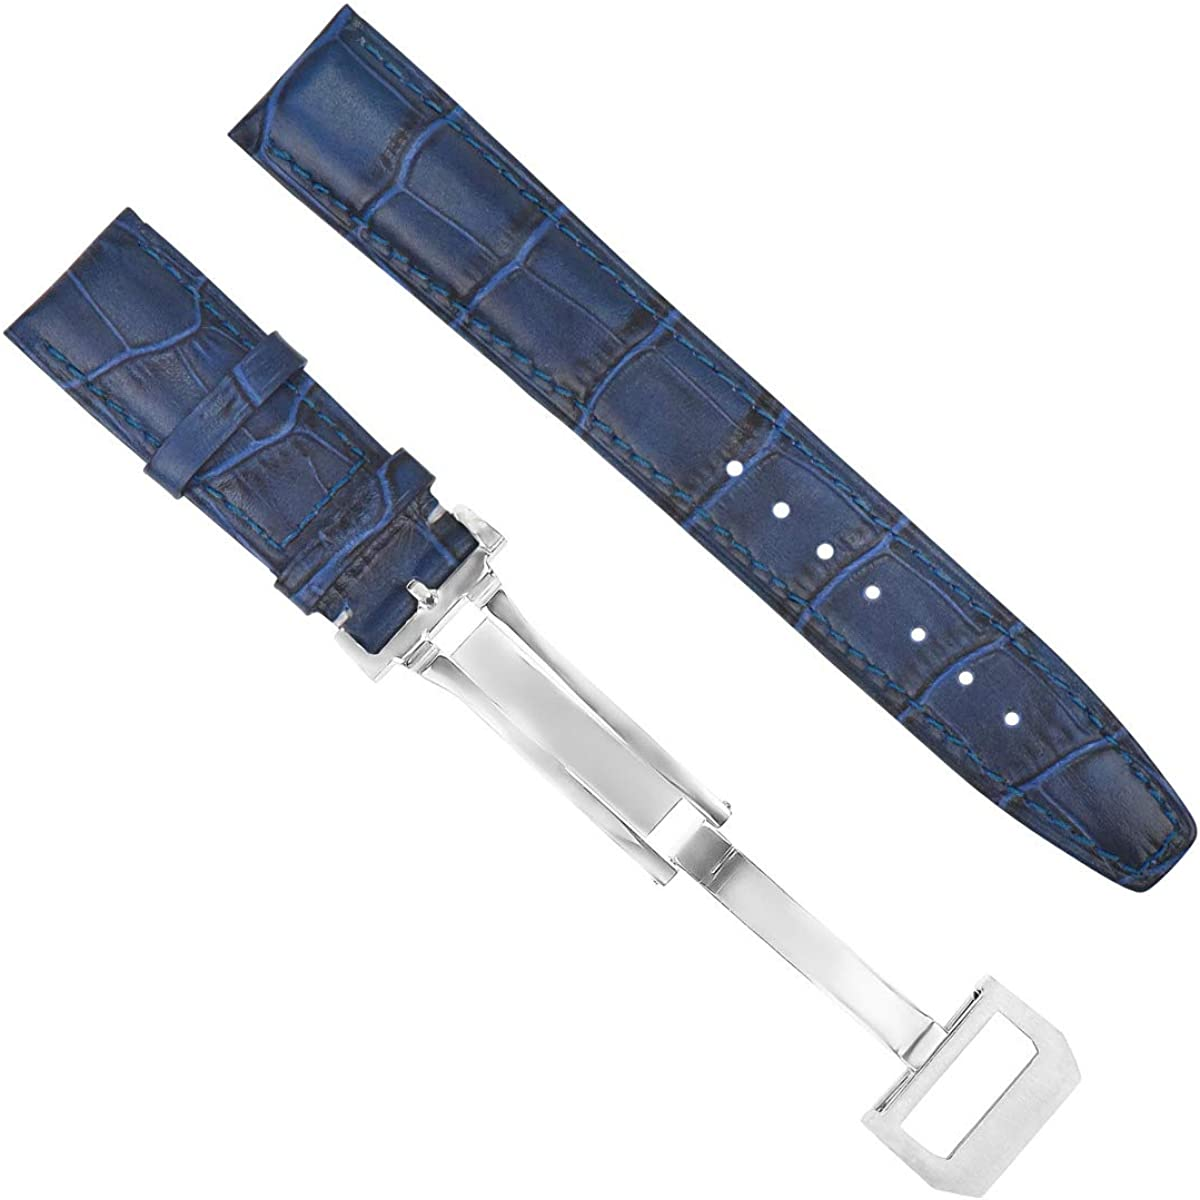 20mm Leather Watch Band Strap with Deployment Compatible Spasm price Pil Iwc Chicago Mall